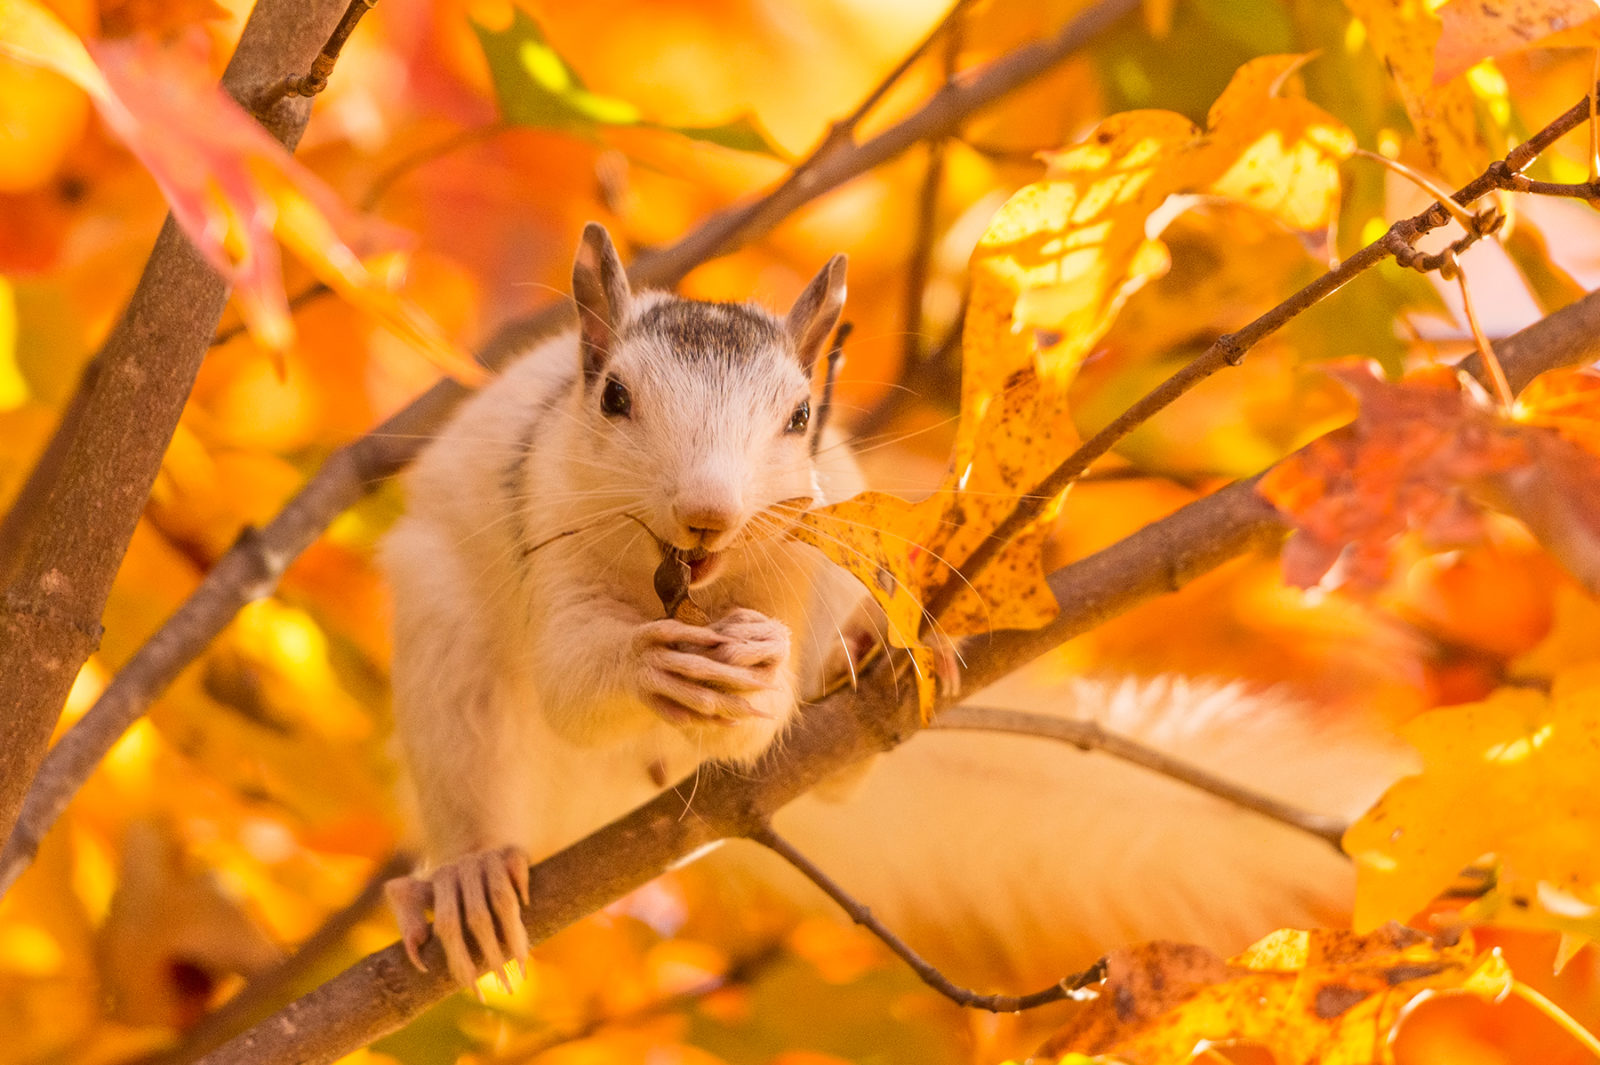 White Squirrel in Fall Colors